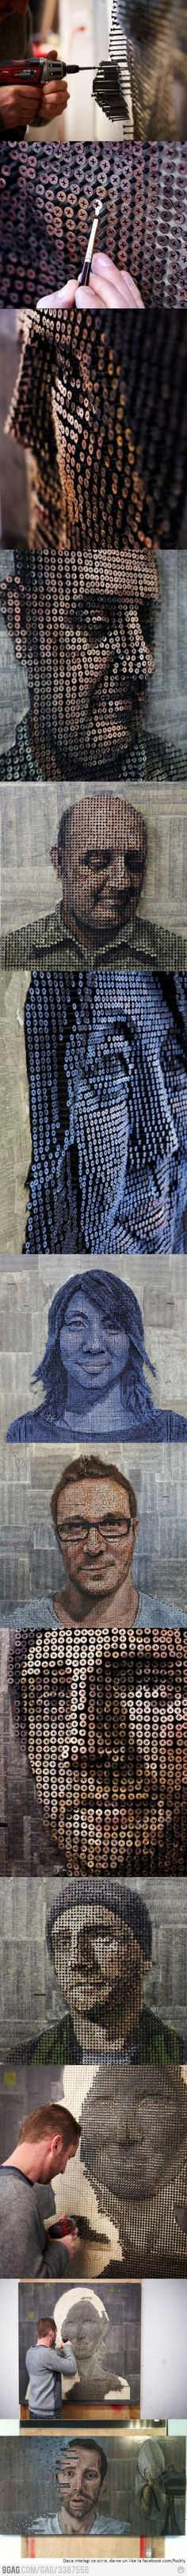 Amazing 3D portraits made out of screws by Andrew Myers-WOW